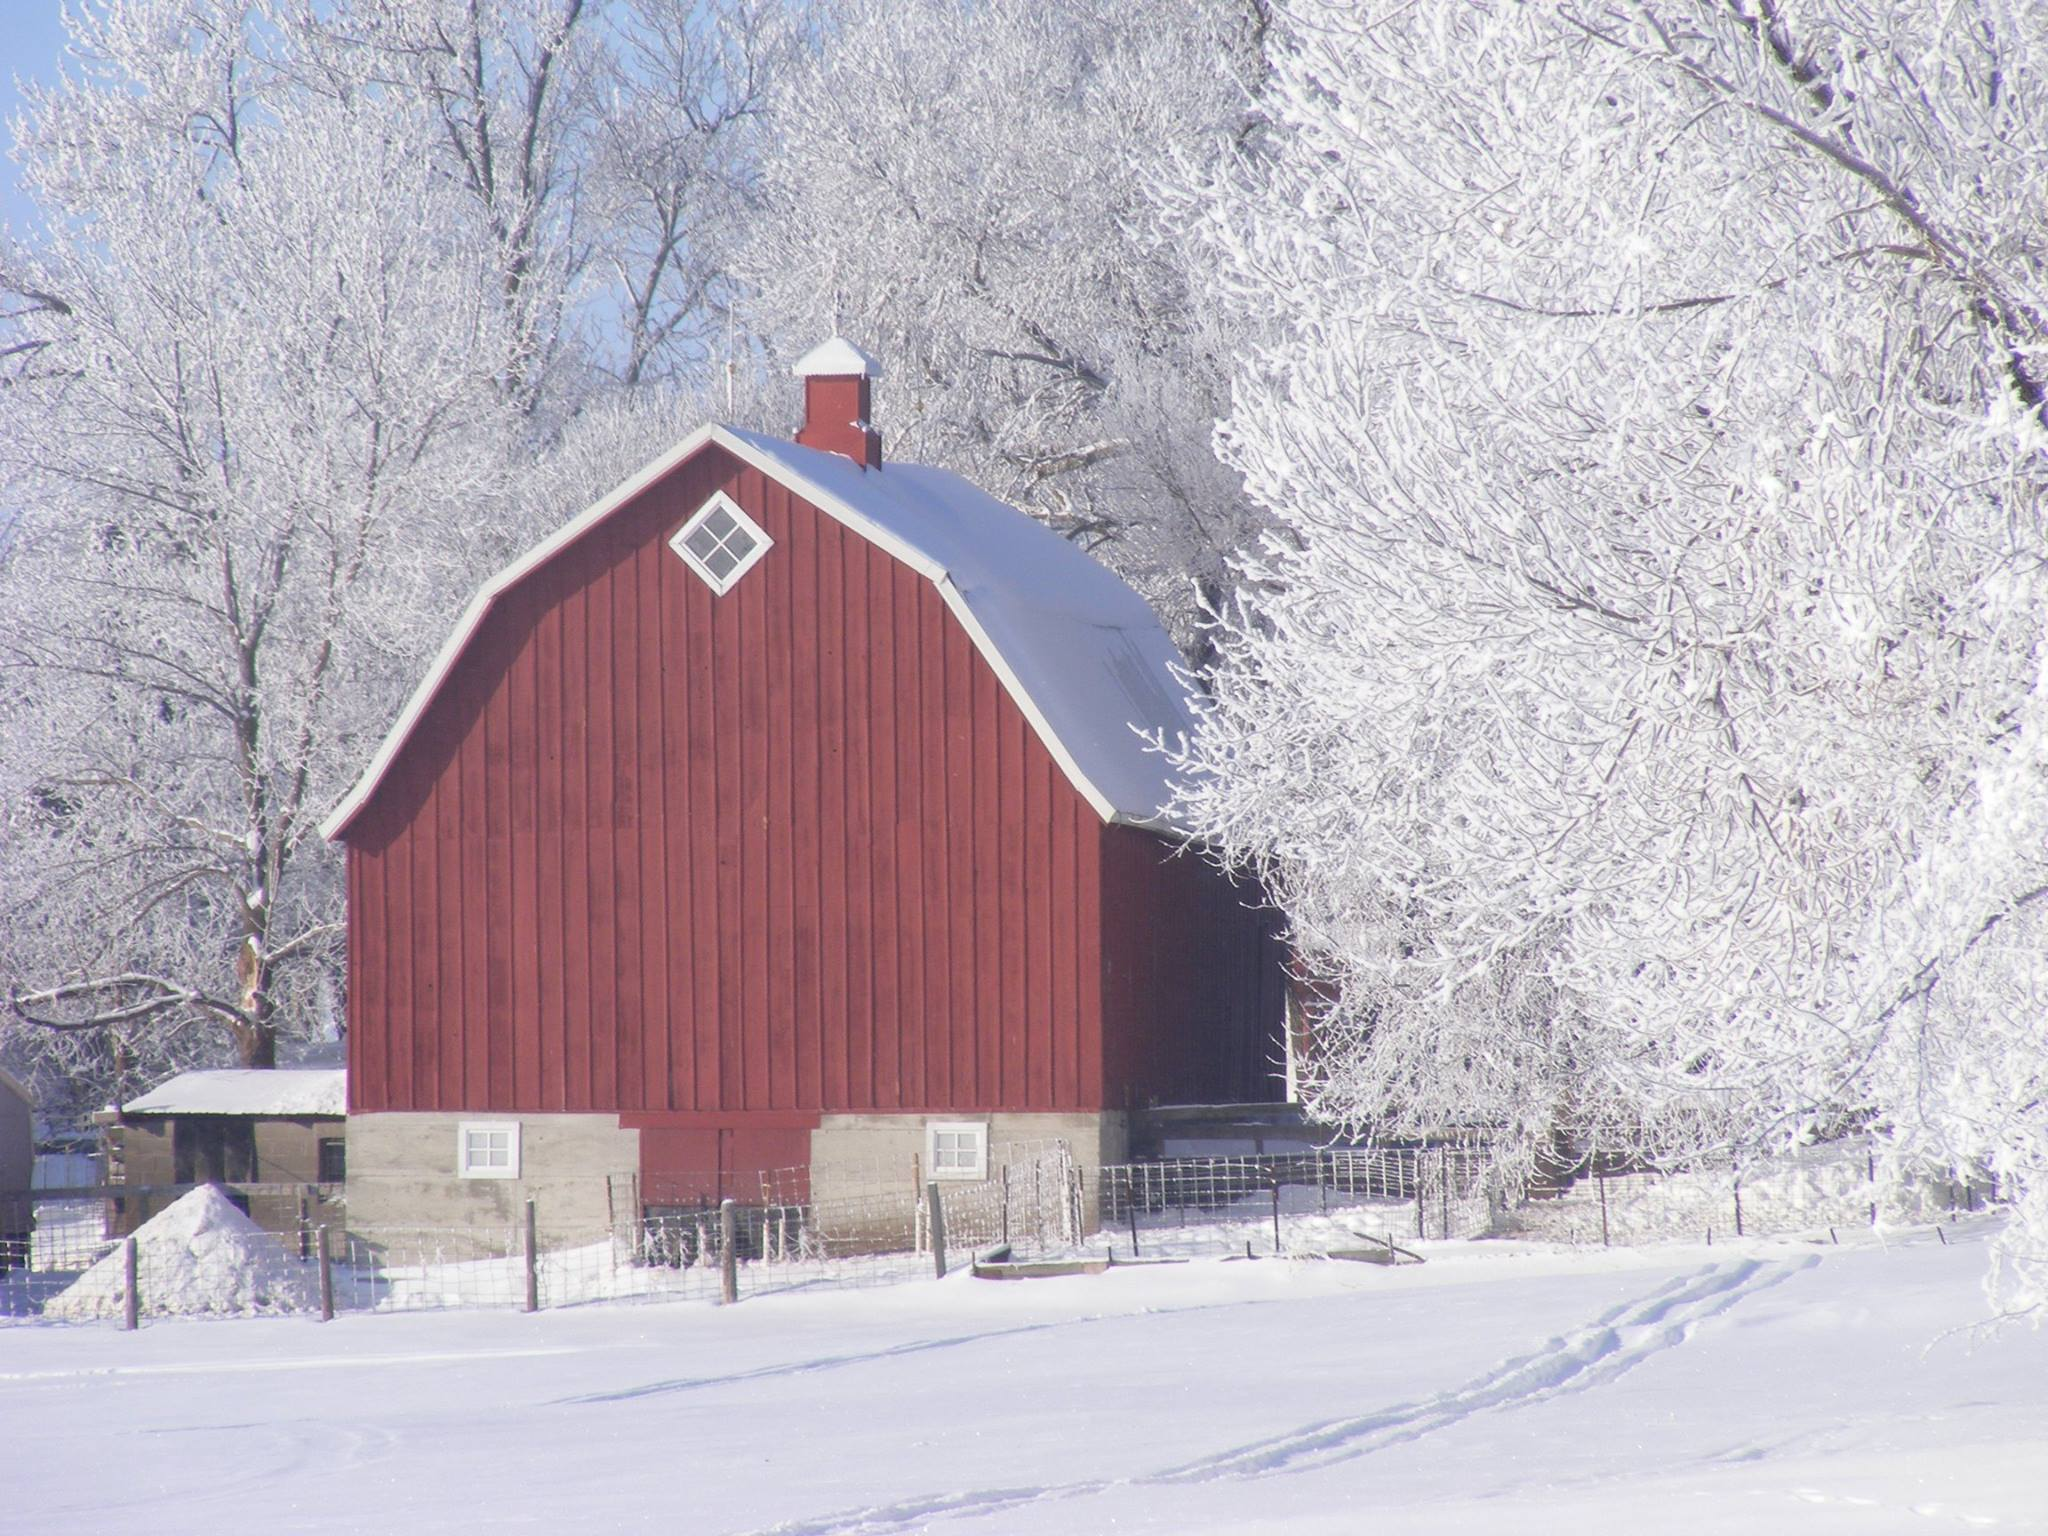 Barns in Winter, 2nd Place - Helen Zuelch